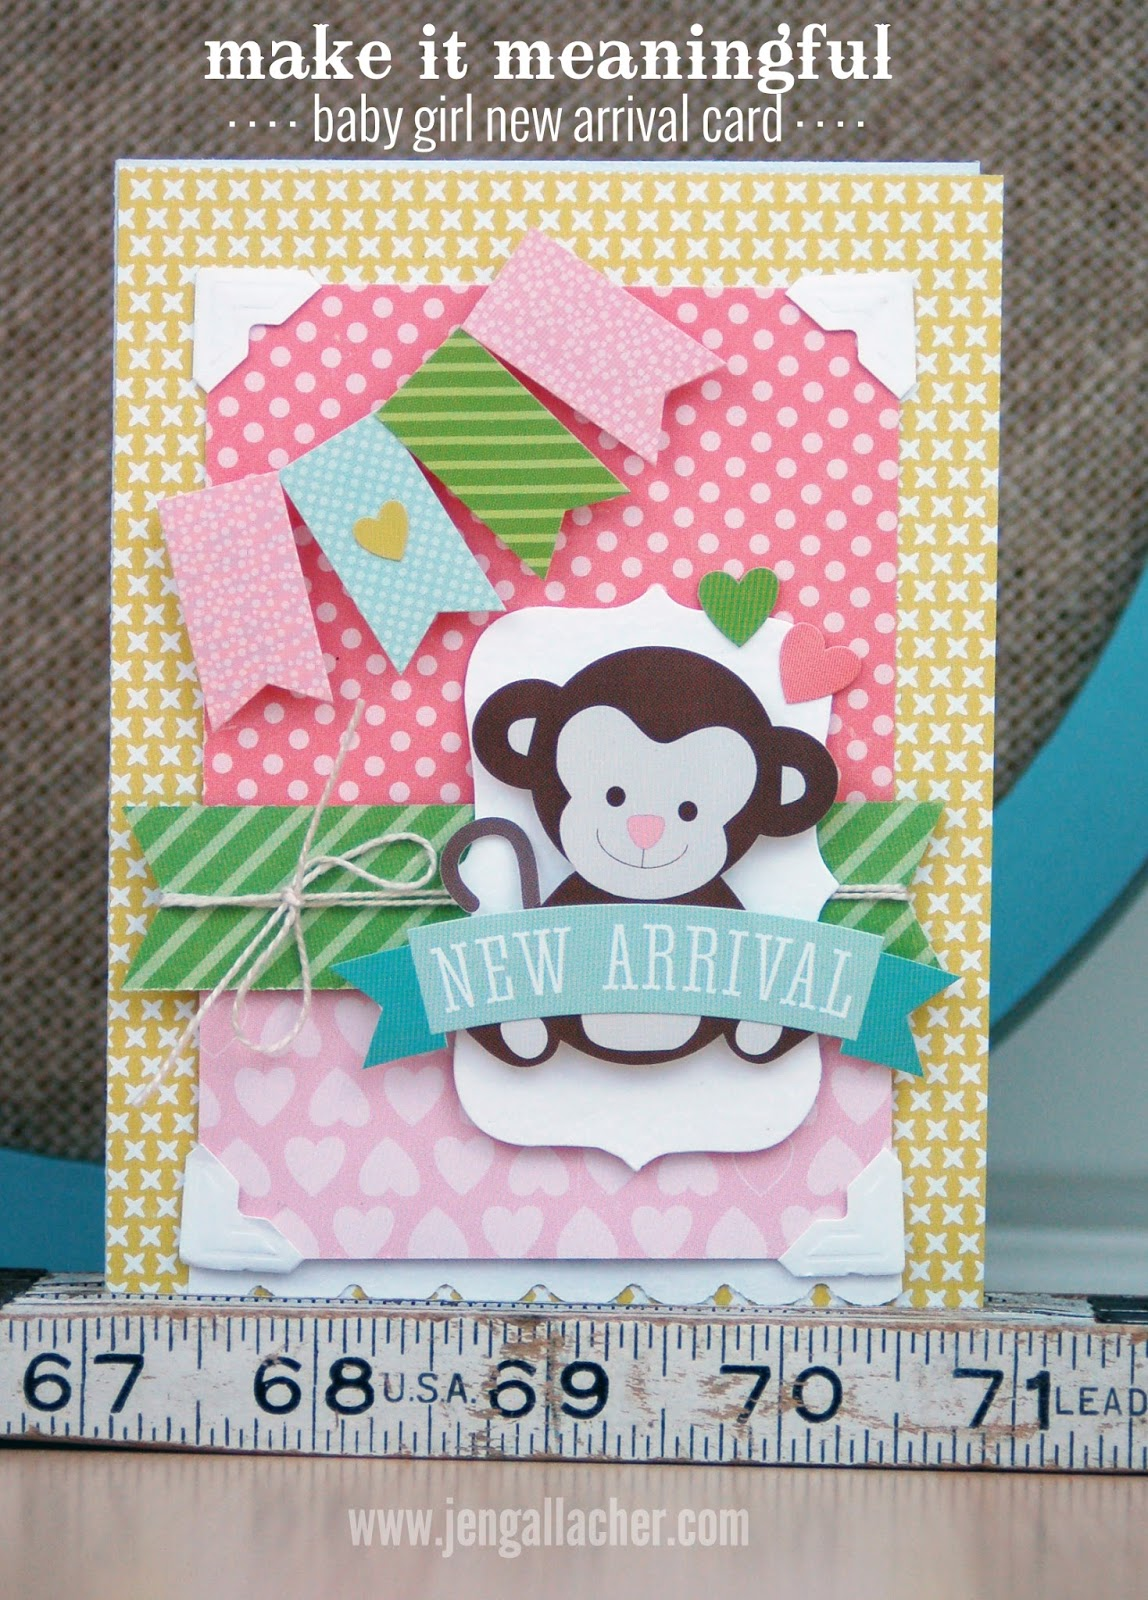 Baby Girl New Arrival Card by Jen Gallacher from www.jengallacher.com